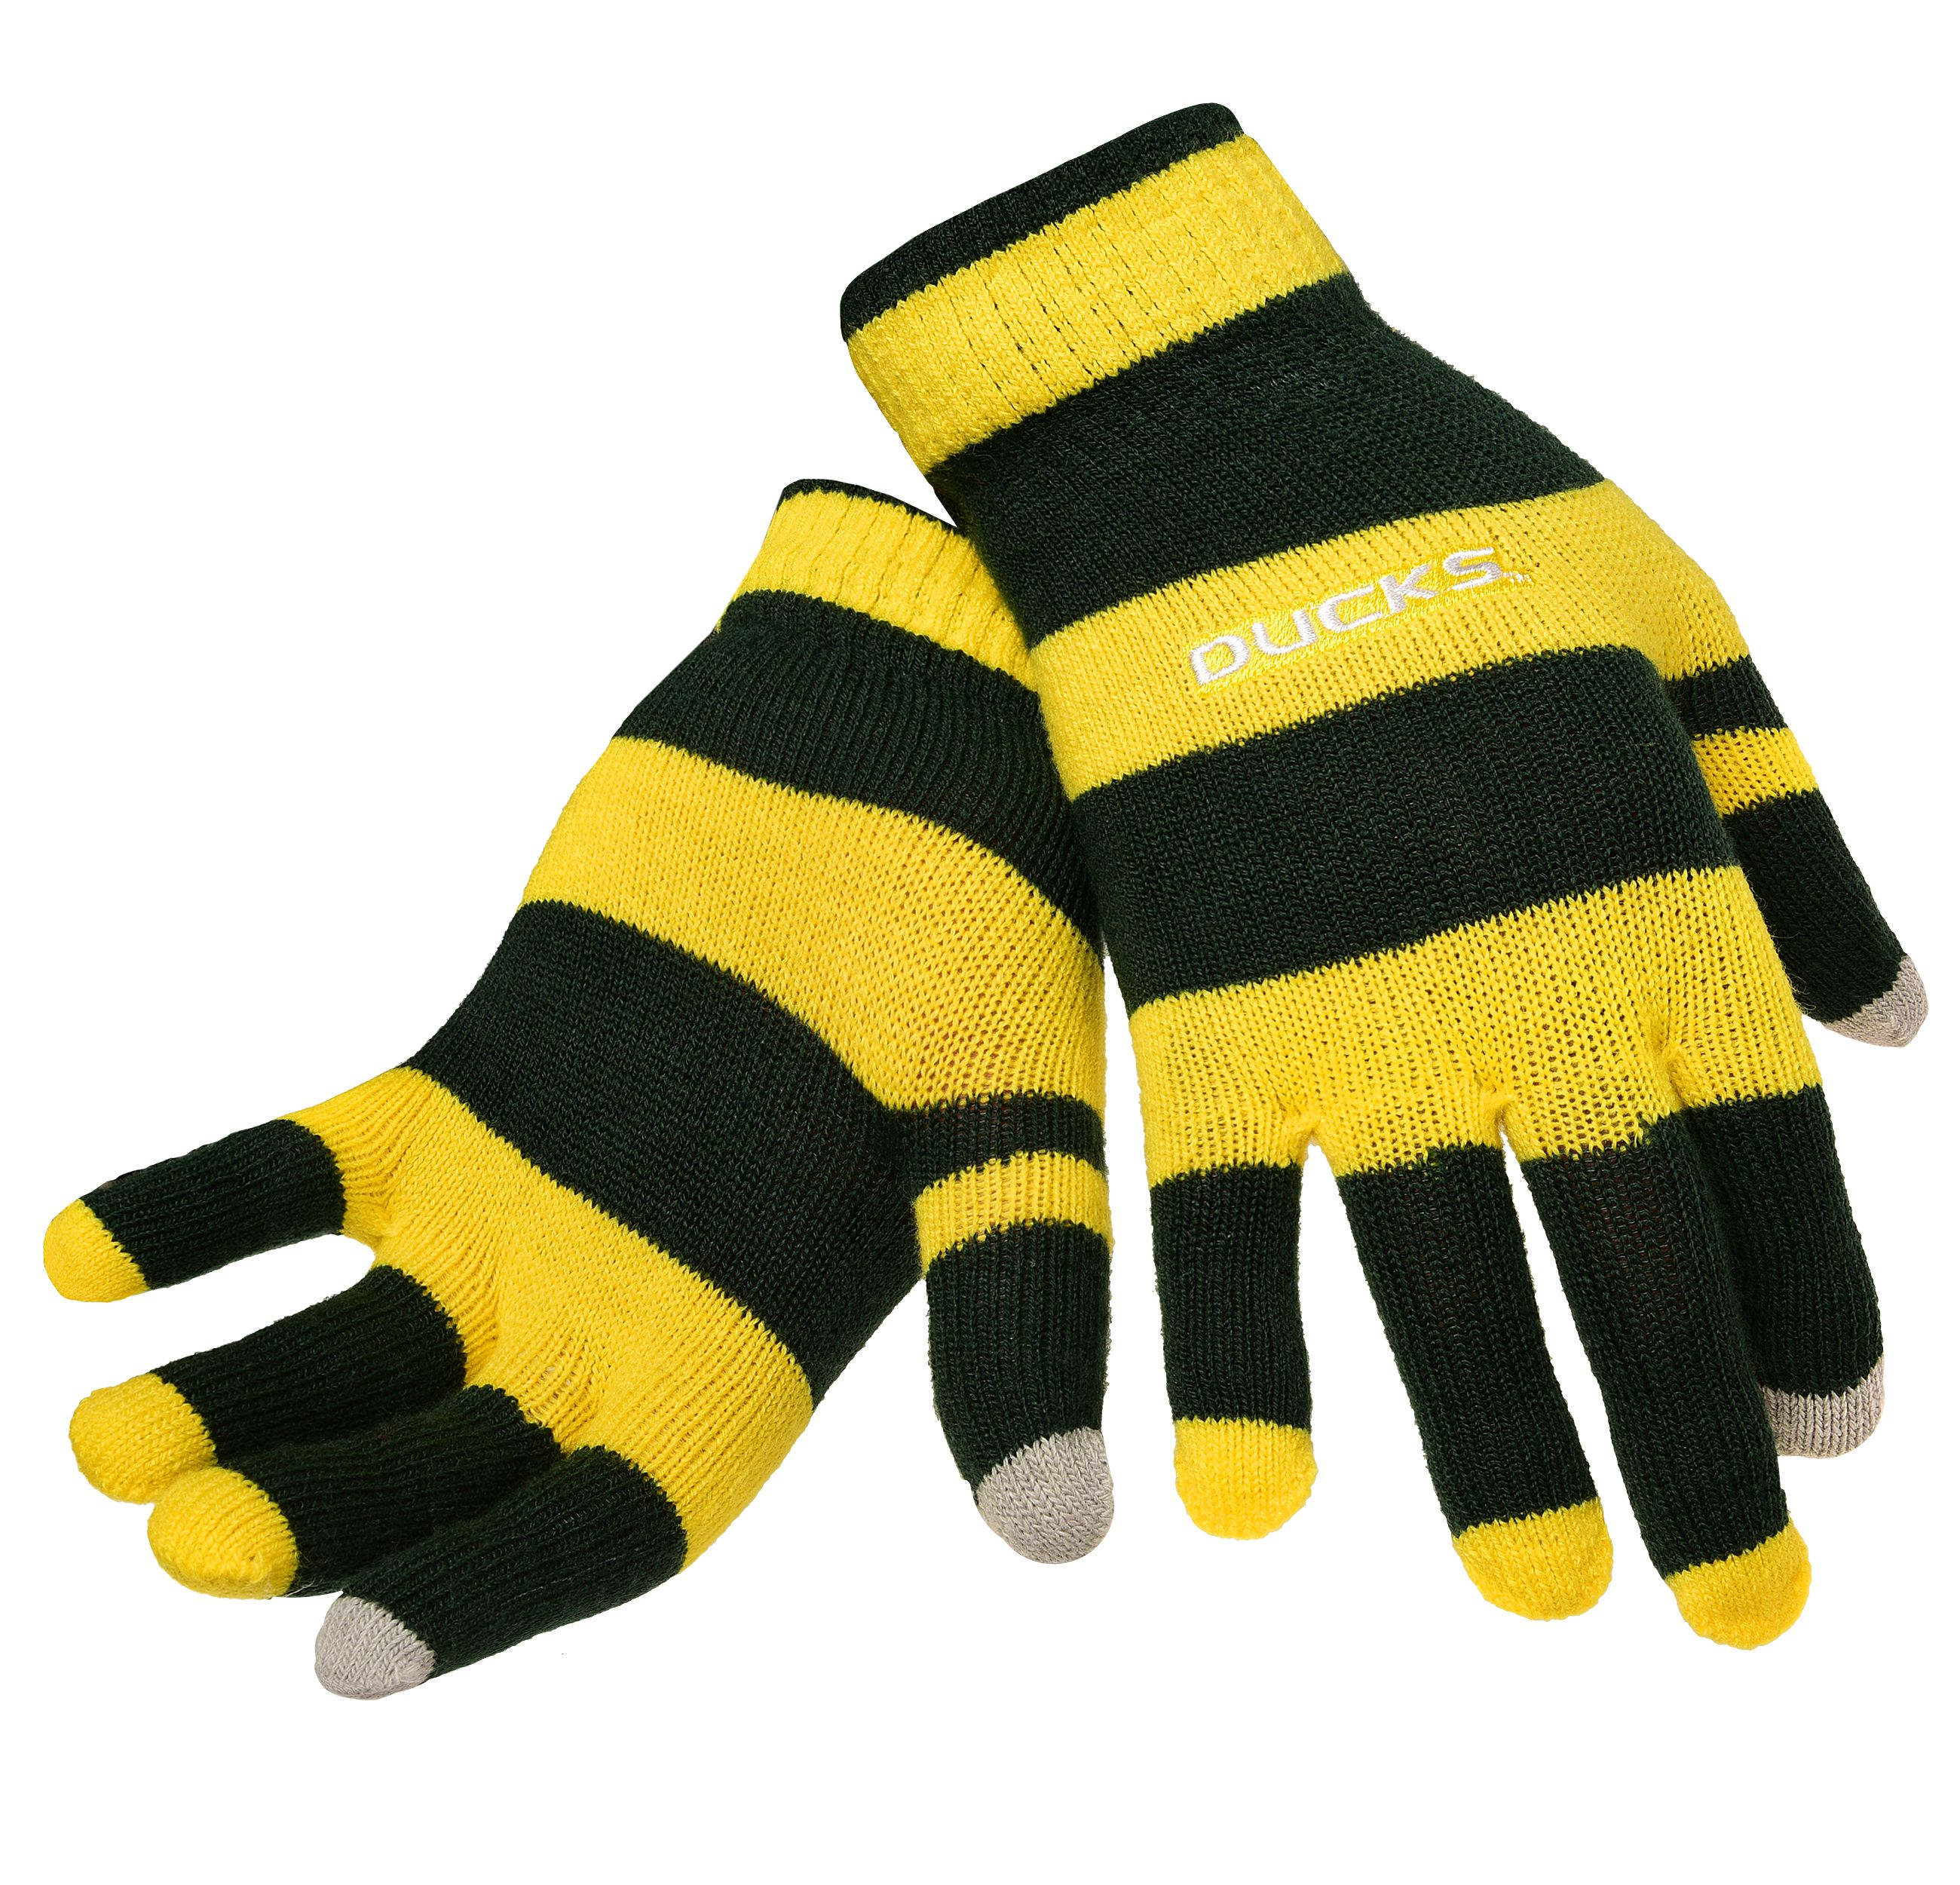 Oregon Ducks Official NCAA Glove Stripe Outdoor Winter Stretch Knit by Forever Collectibles 594376 by Forever Collectibles